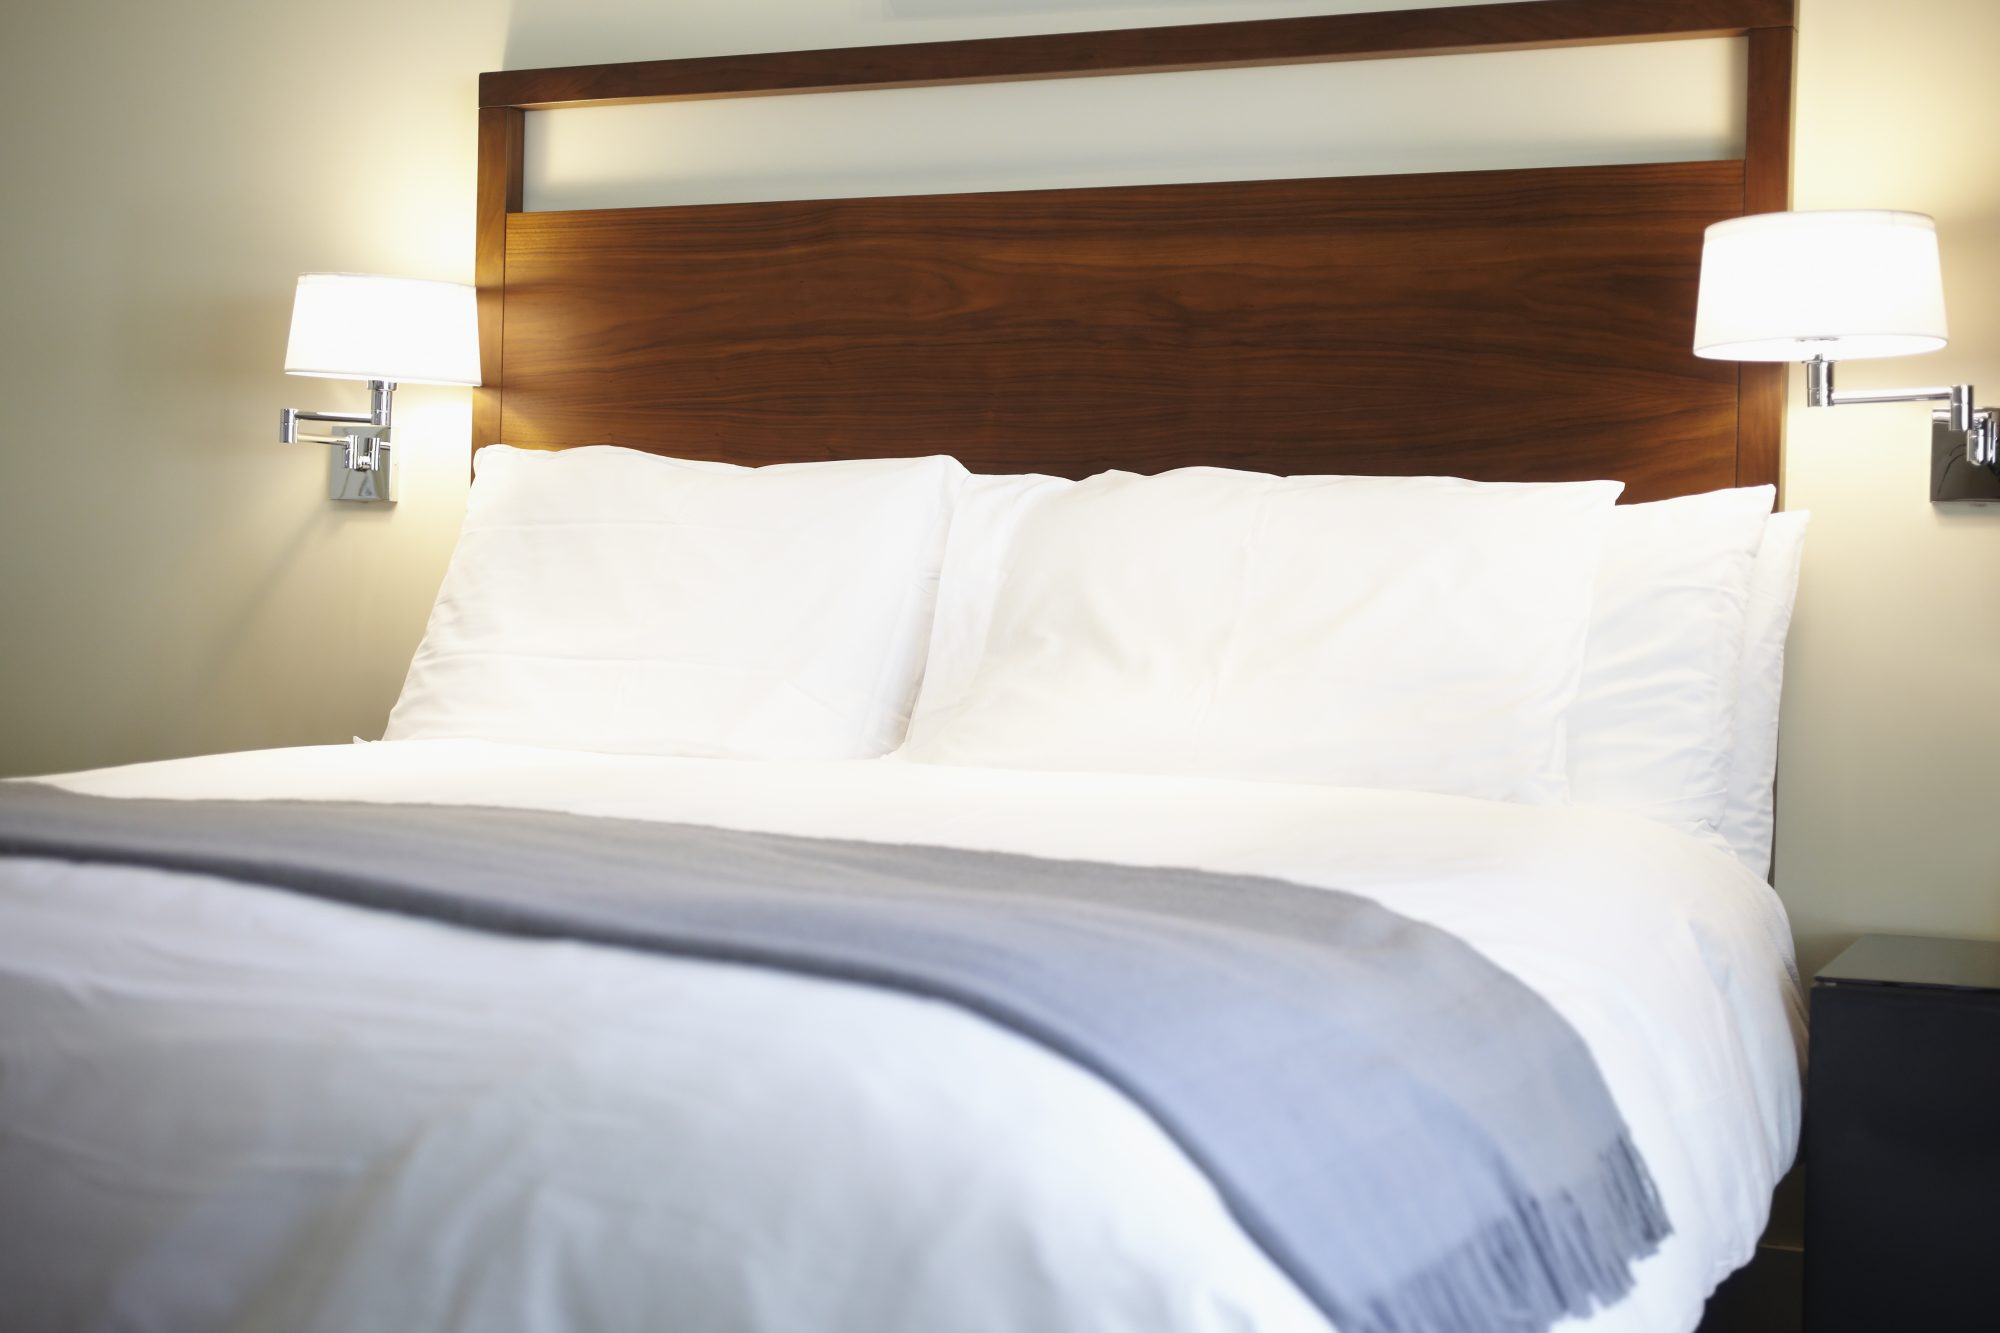 How To Search For Bed Bugs In Hotel Rooms